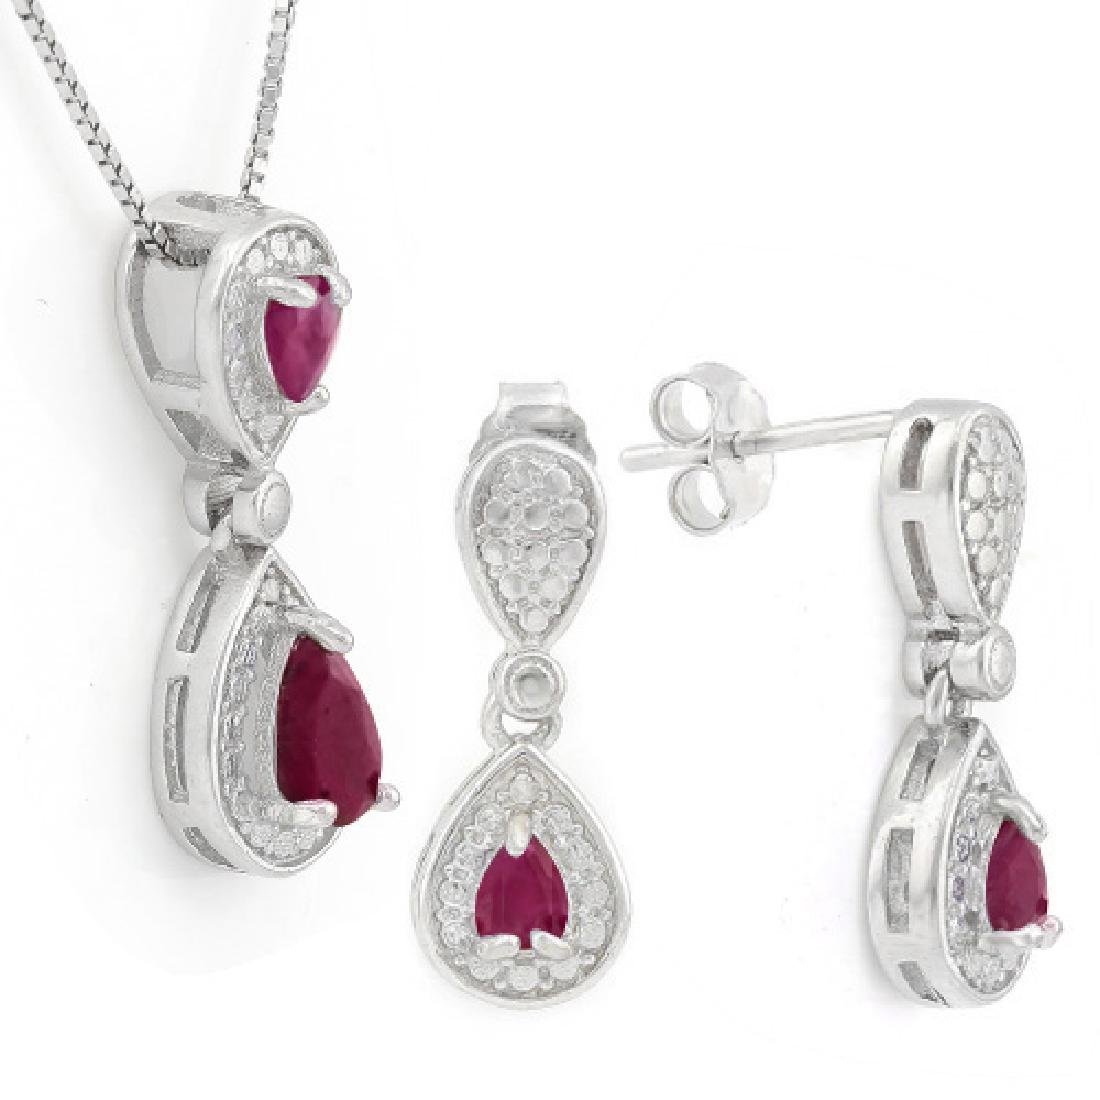 1 CARAT RUBY 925 STERLING SILVER SET ( No chain comes w